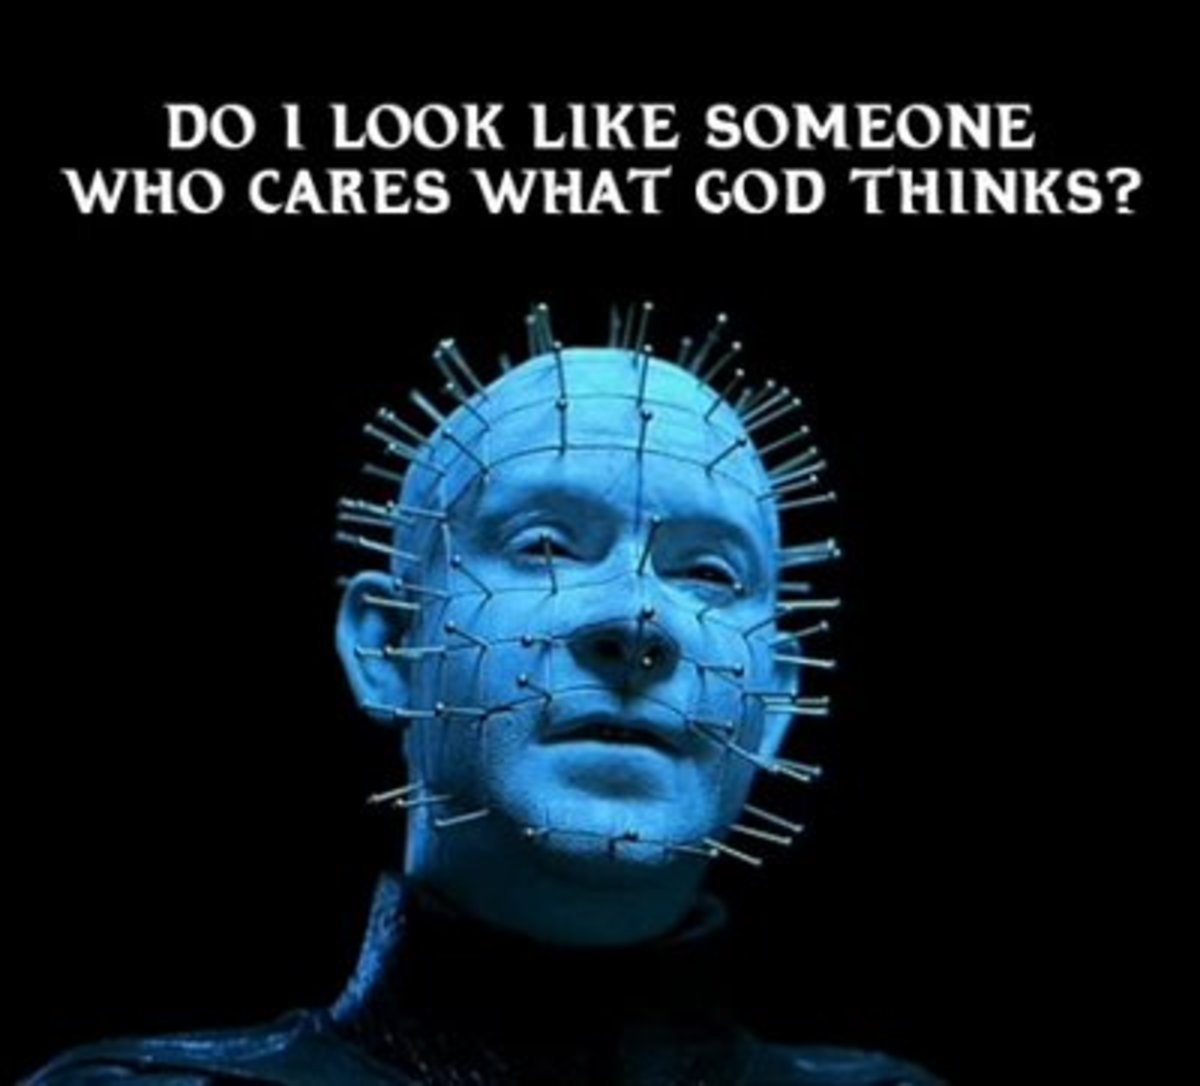 Doug Bradley portrayed the character of Hellraiser with such passion that the image remains one of the most memorable in the world of horror.